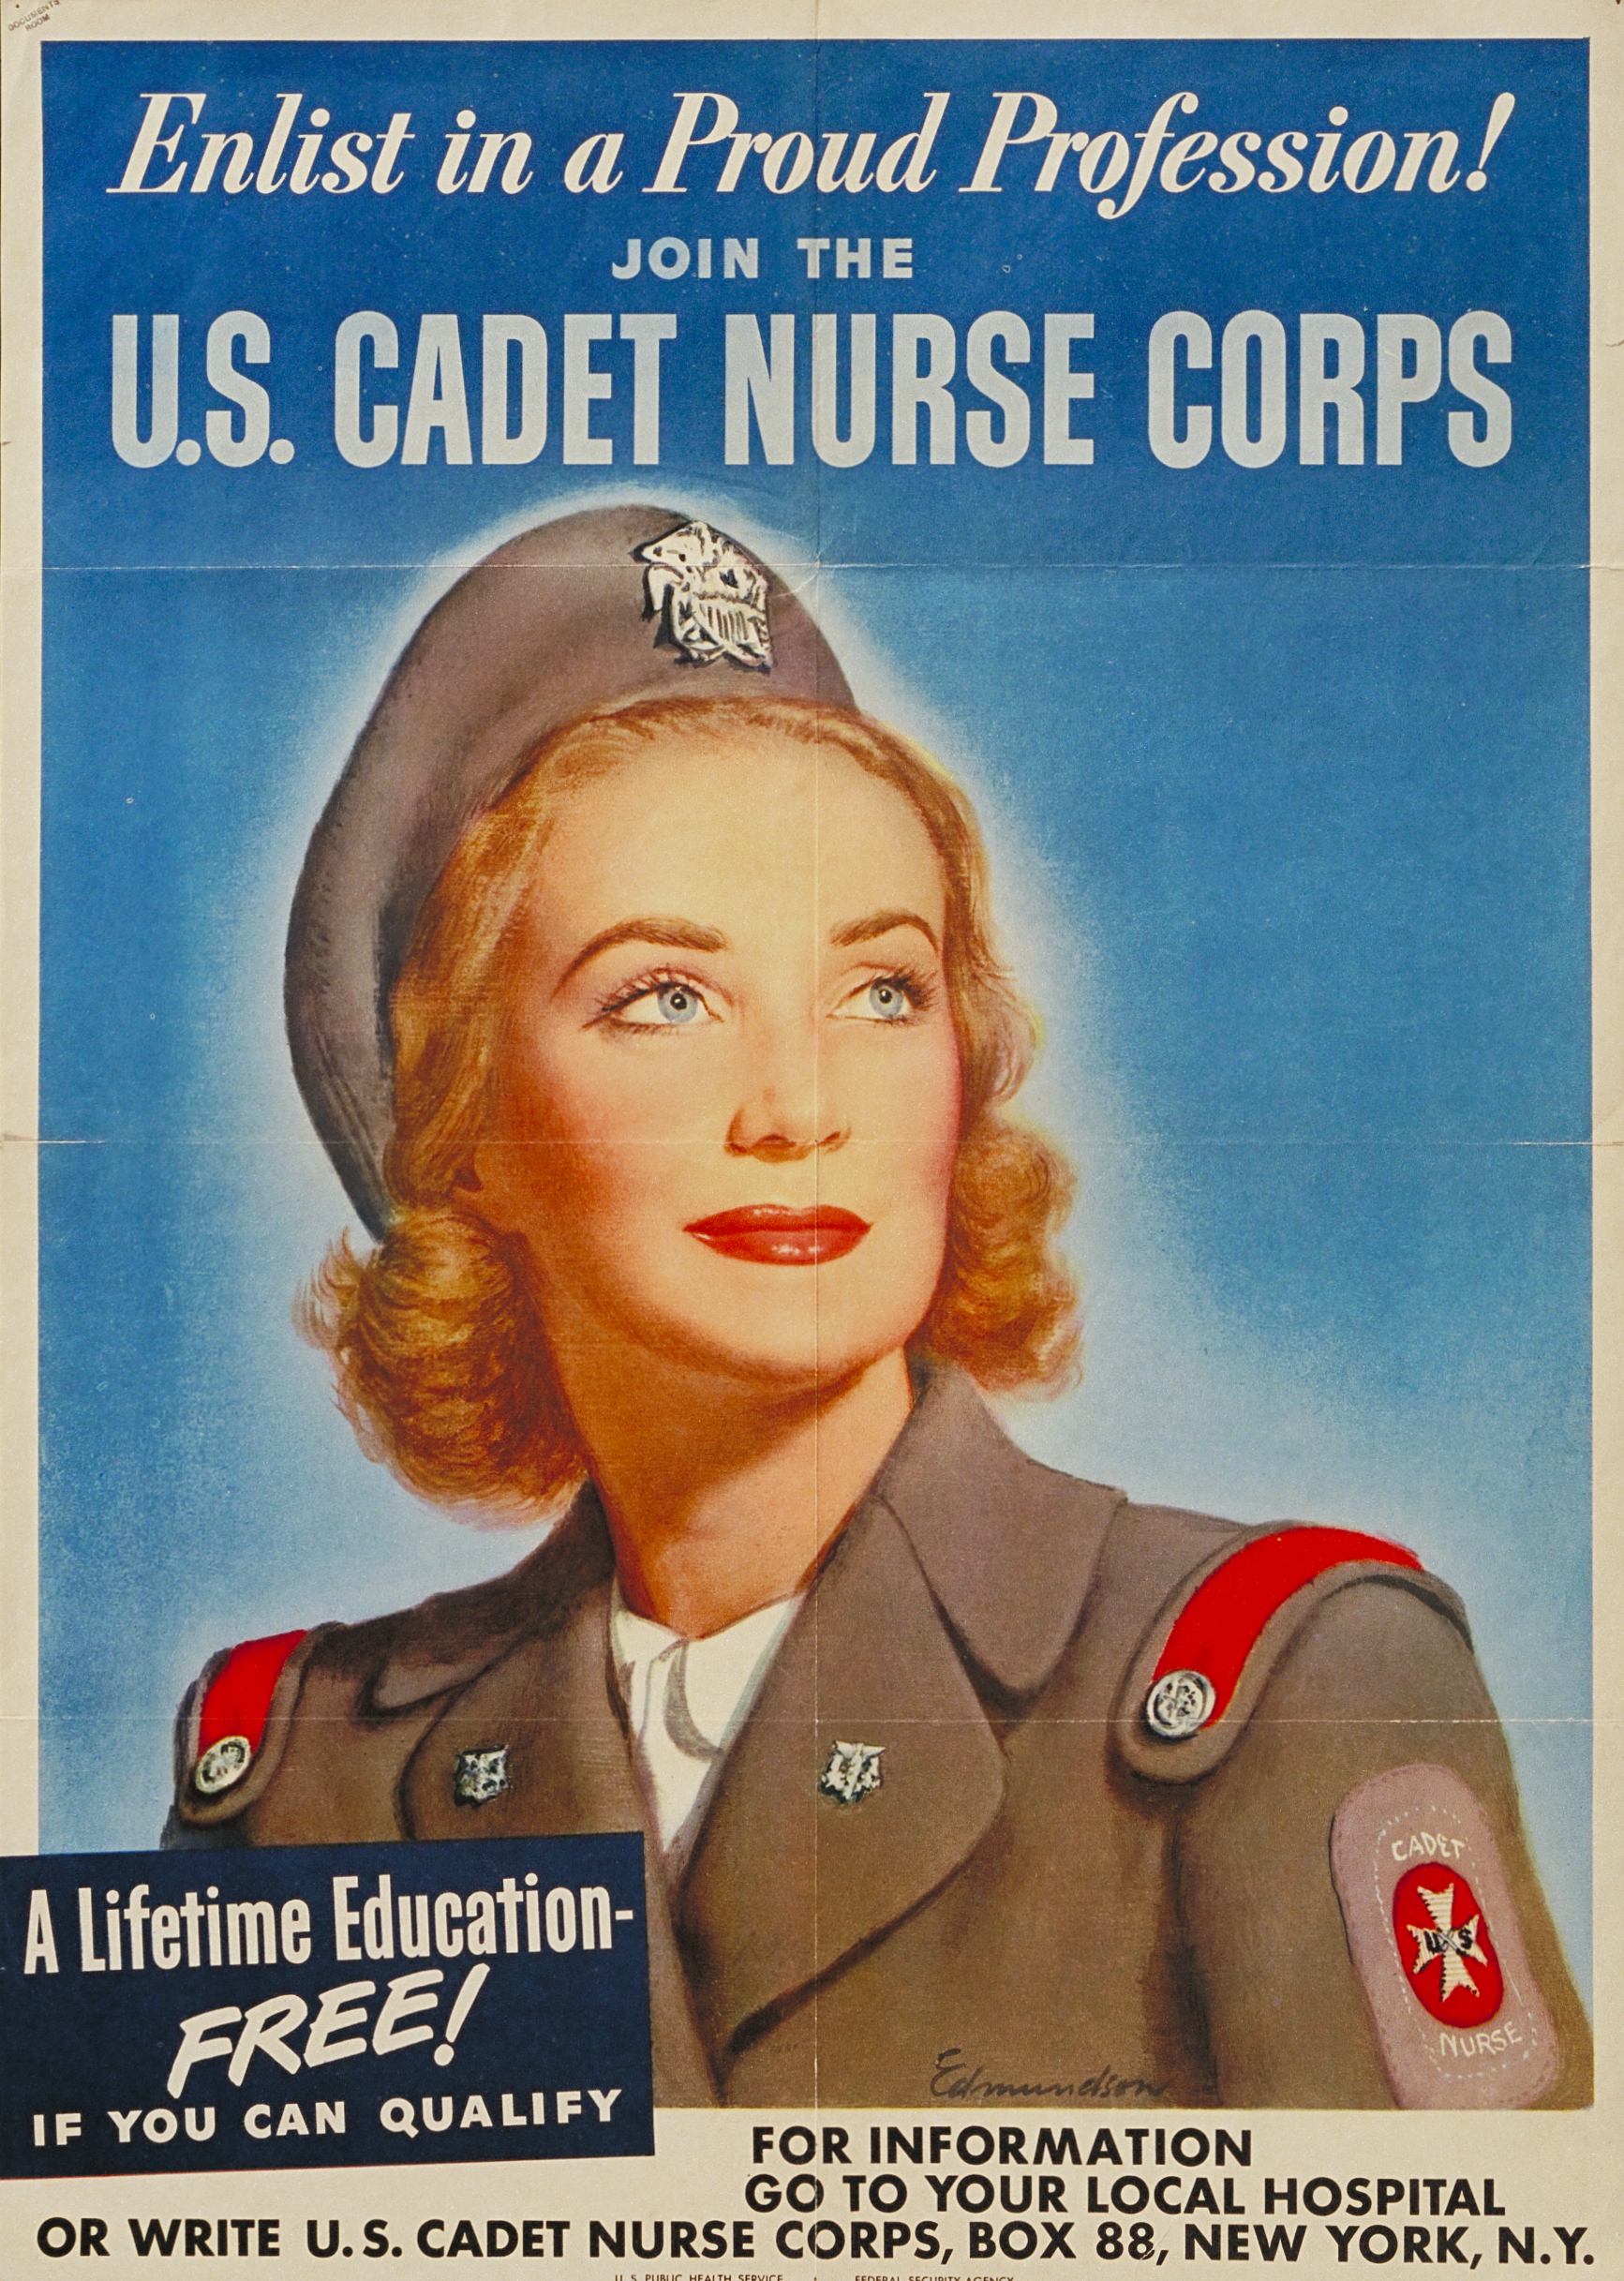 Enlist in a Proud Profession! U.S. Cadet Nurse Corps Poster